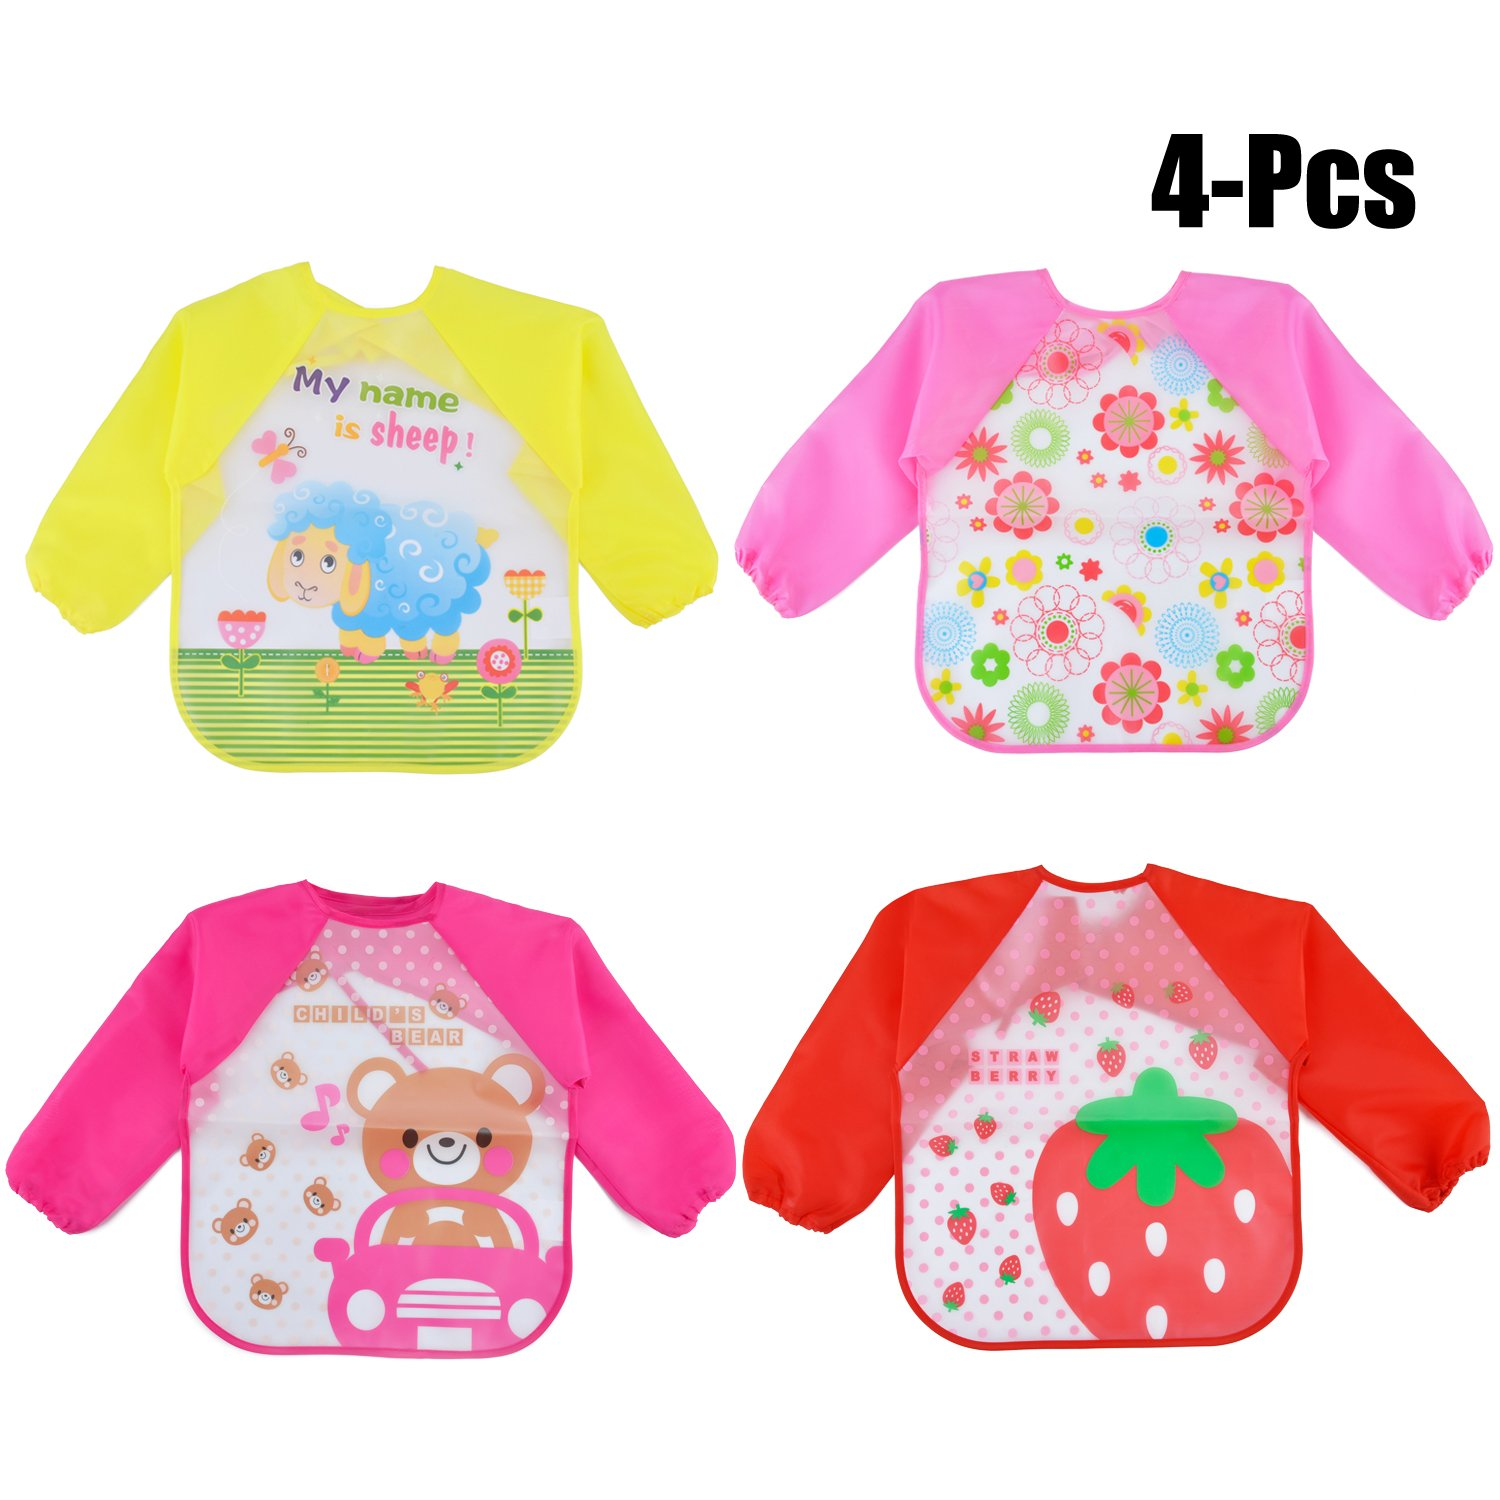 Zoylink 4PCS Long Sleeve Bib Waterproof Bib Cartoon Drooling Bib Feeding Bib for Baby Infants